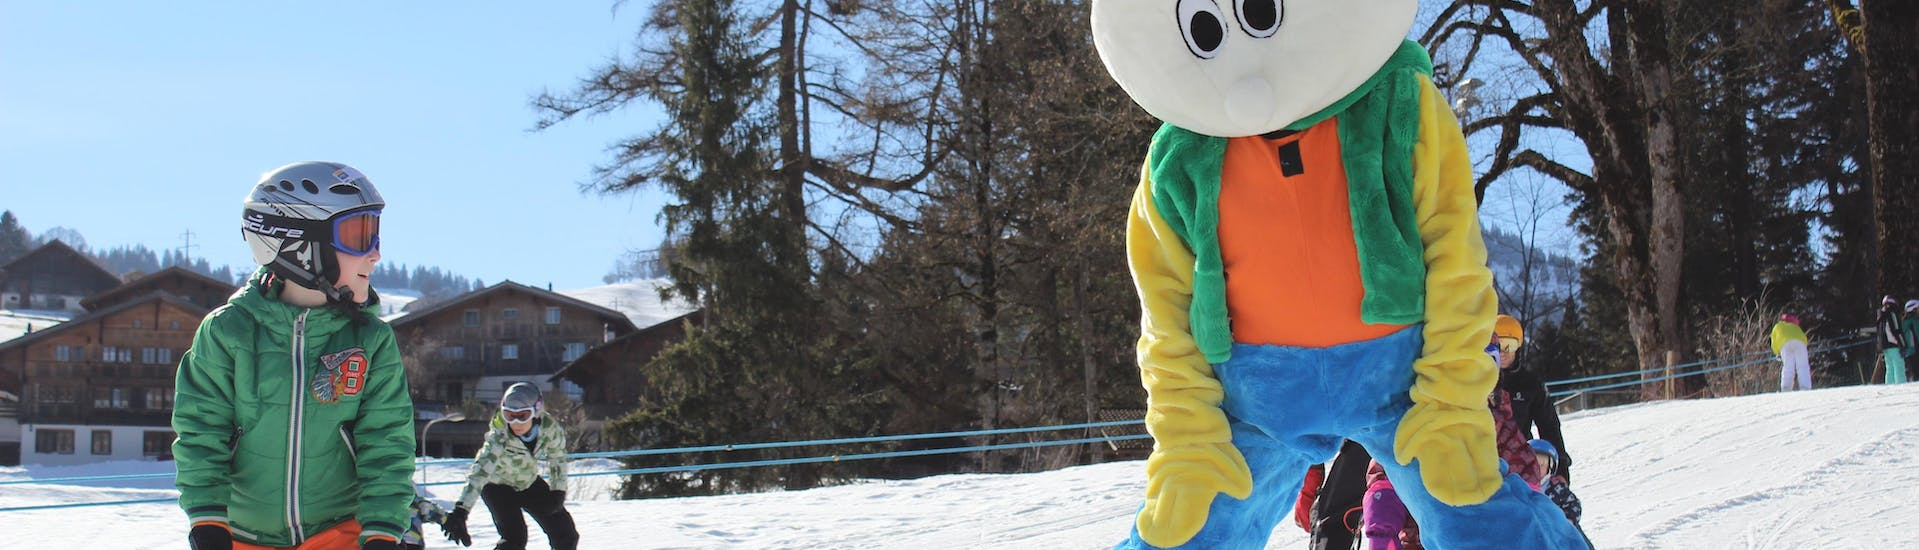 Kids Ski Lessons (3-16 y.) for First Timers - Weekend with Swiss Ski School Zweisimmen - Hero image